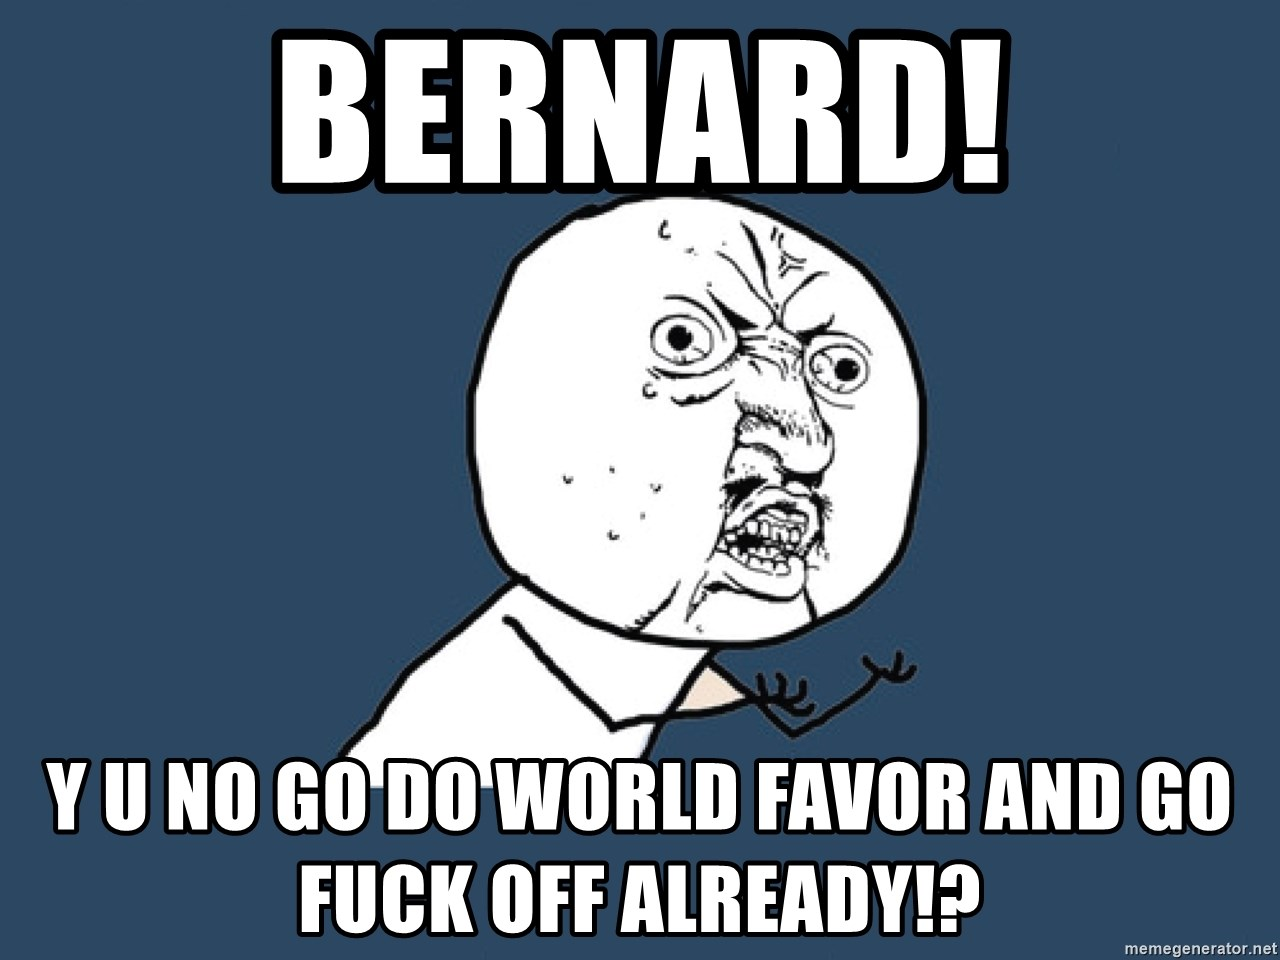 Y U No - Bernard! Y u no go do world favor and go fuck off already!?